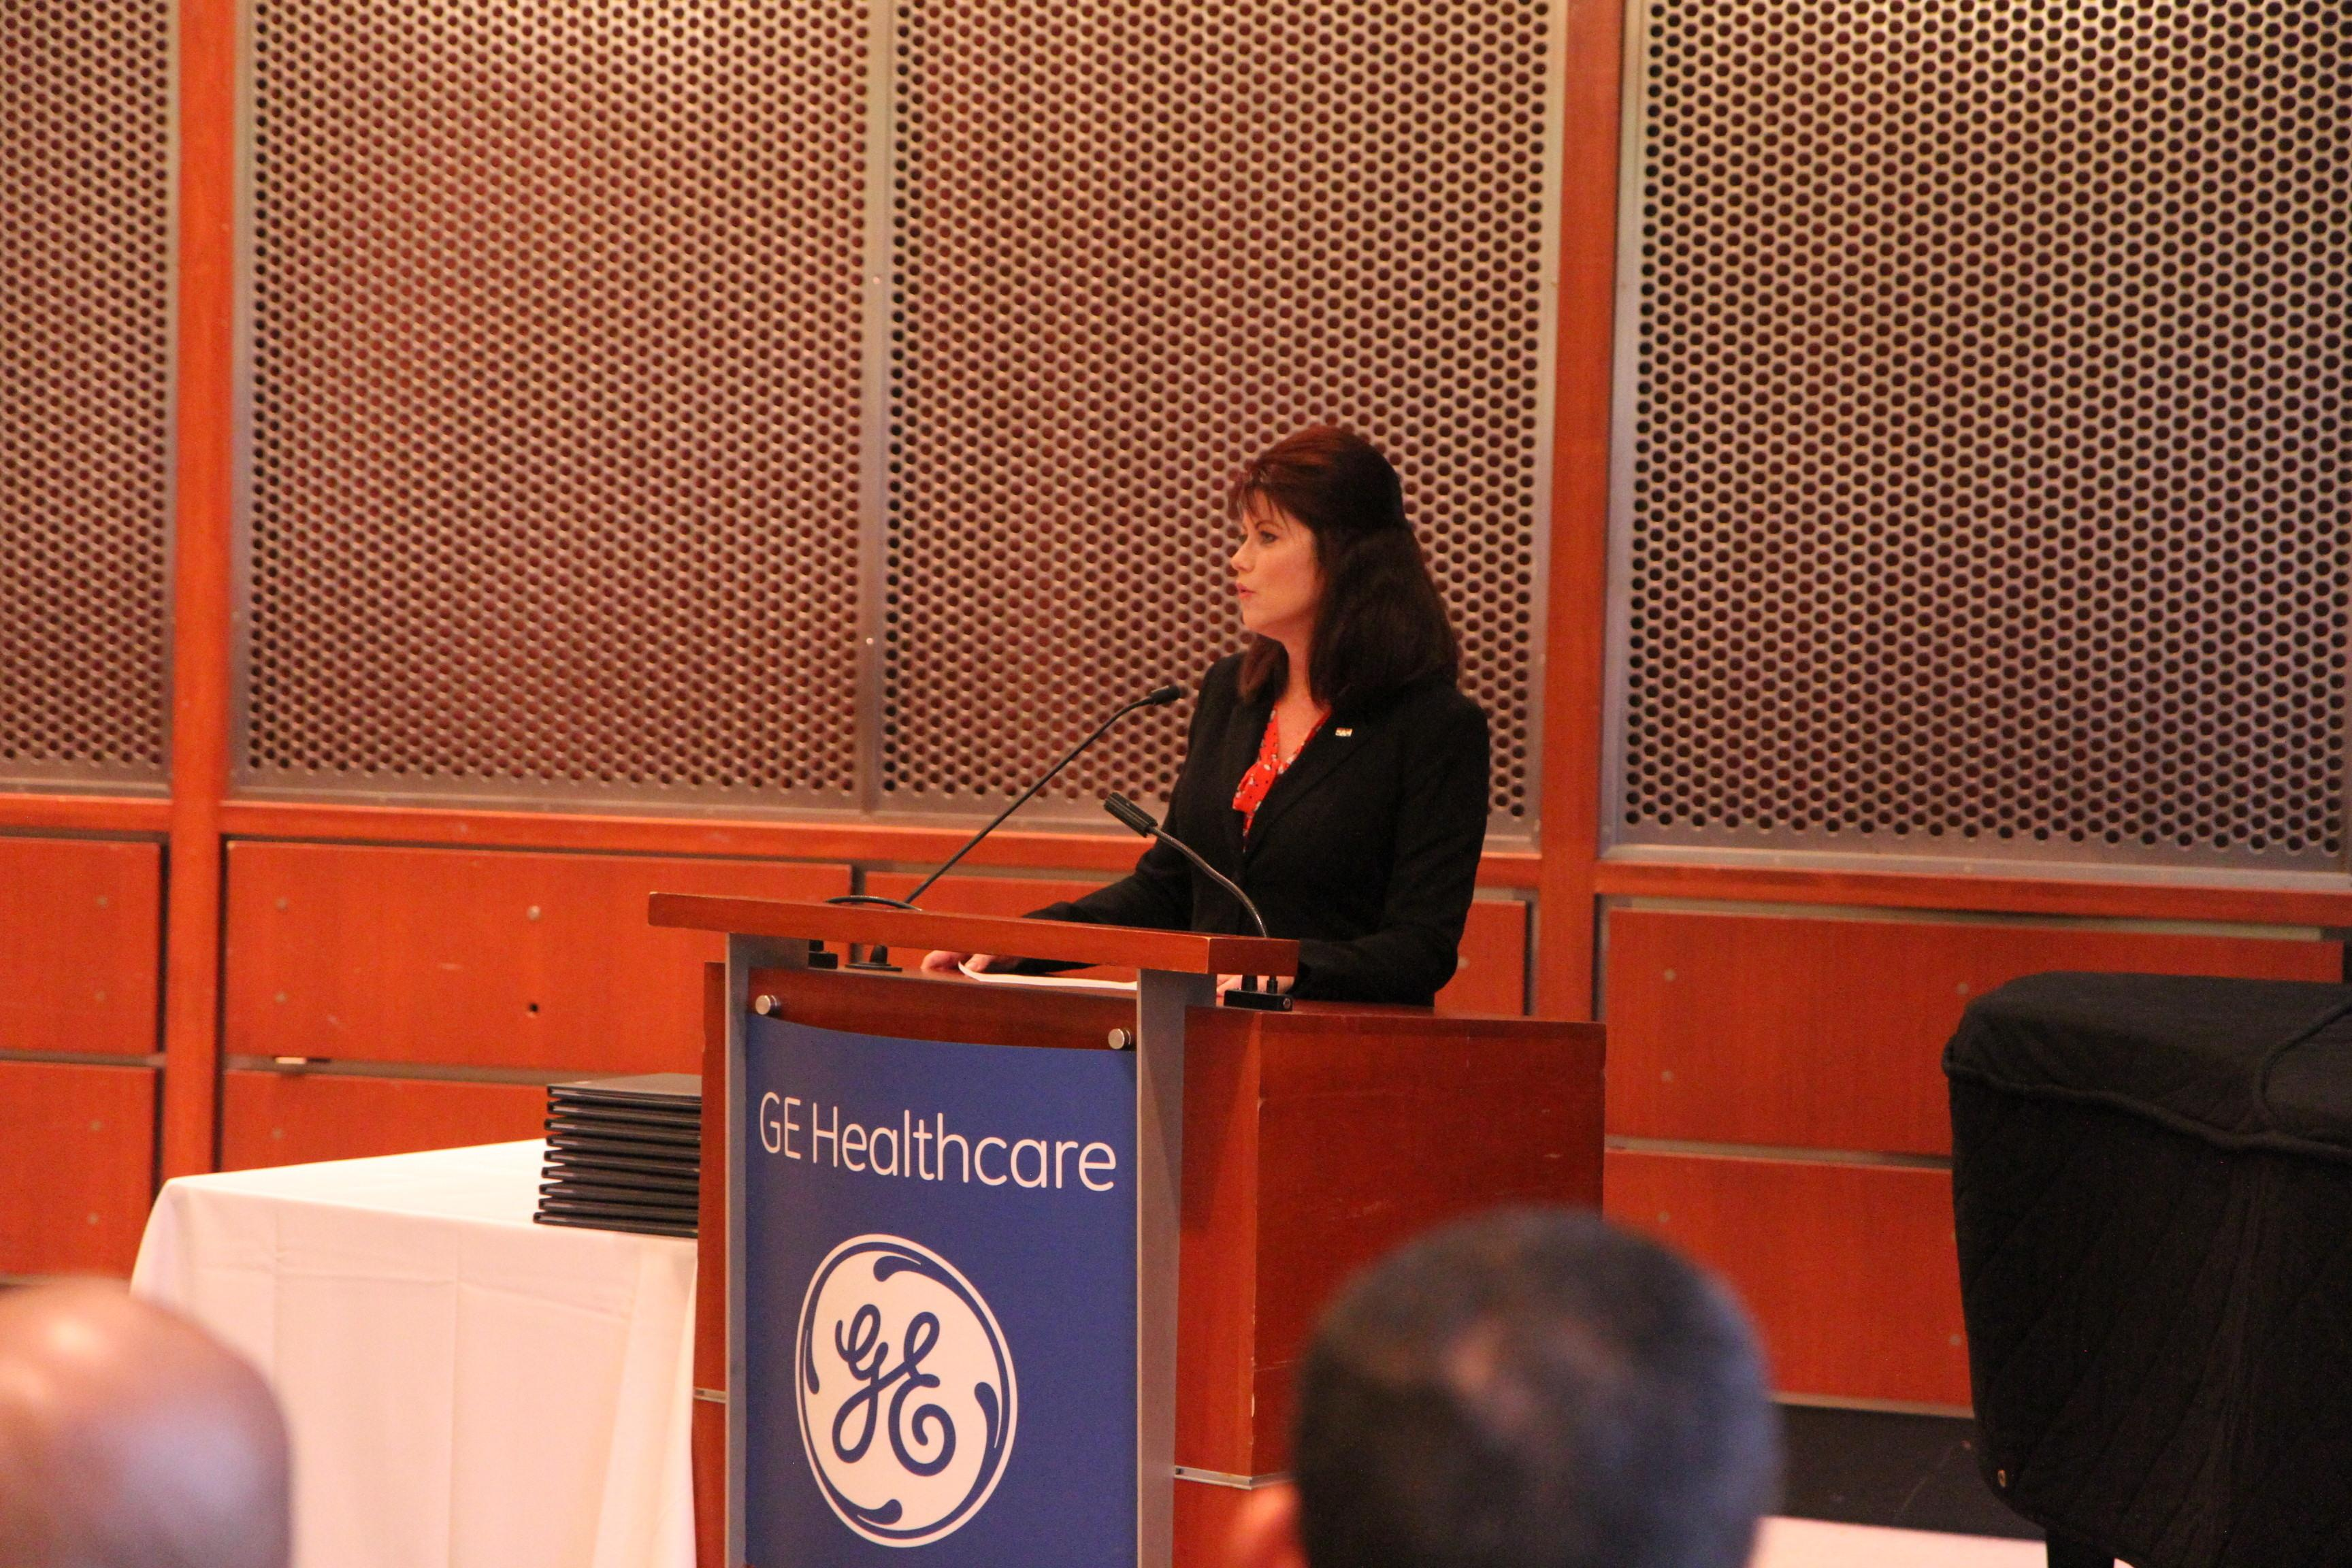 FileRebecca Kleefisch Addresses Graduates During The General Electric Military Externship Graduation Ceremony